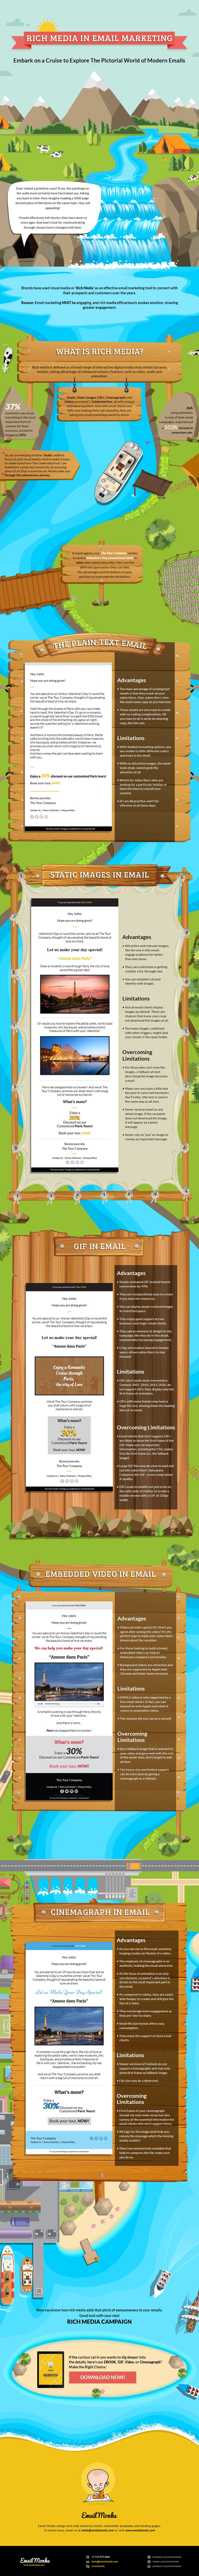 How Rich Media Can Boost Email Marketing Performance [Infographic]